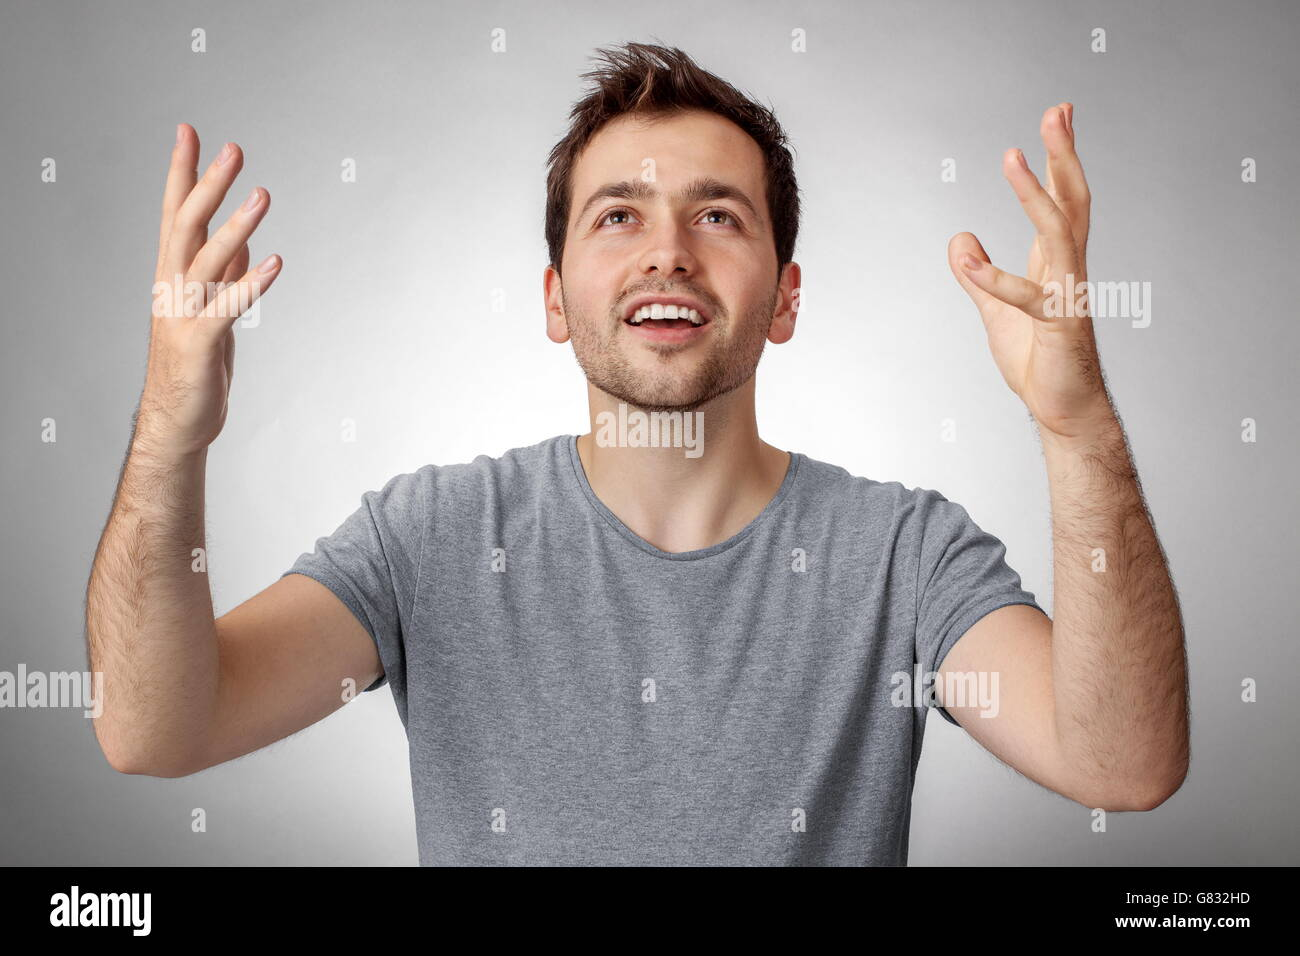 Young man looking up and worship God with raised hands - Stock Image